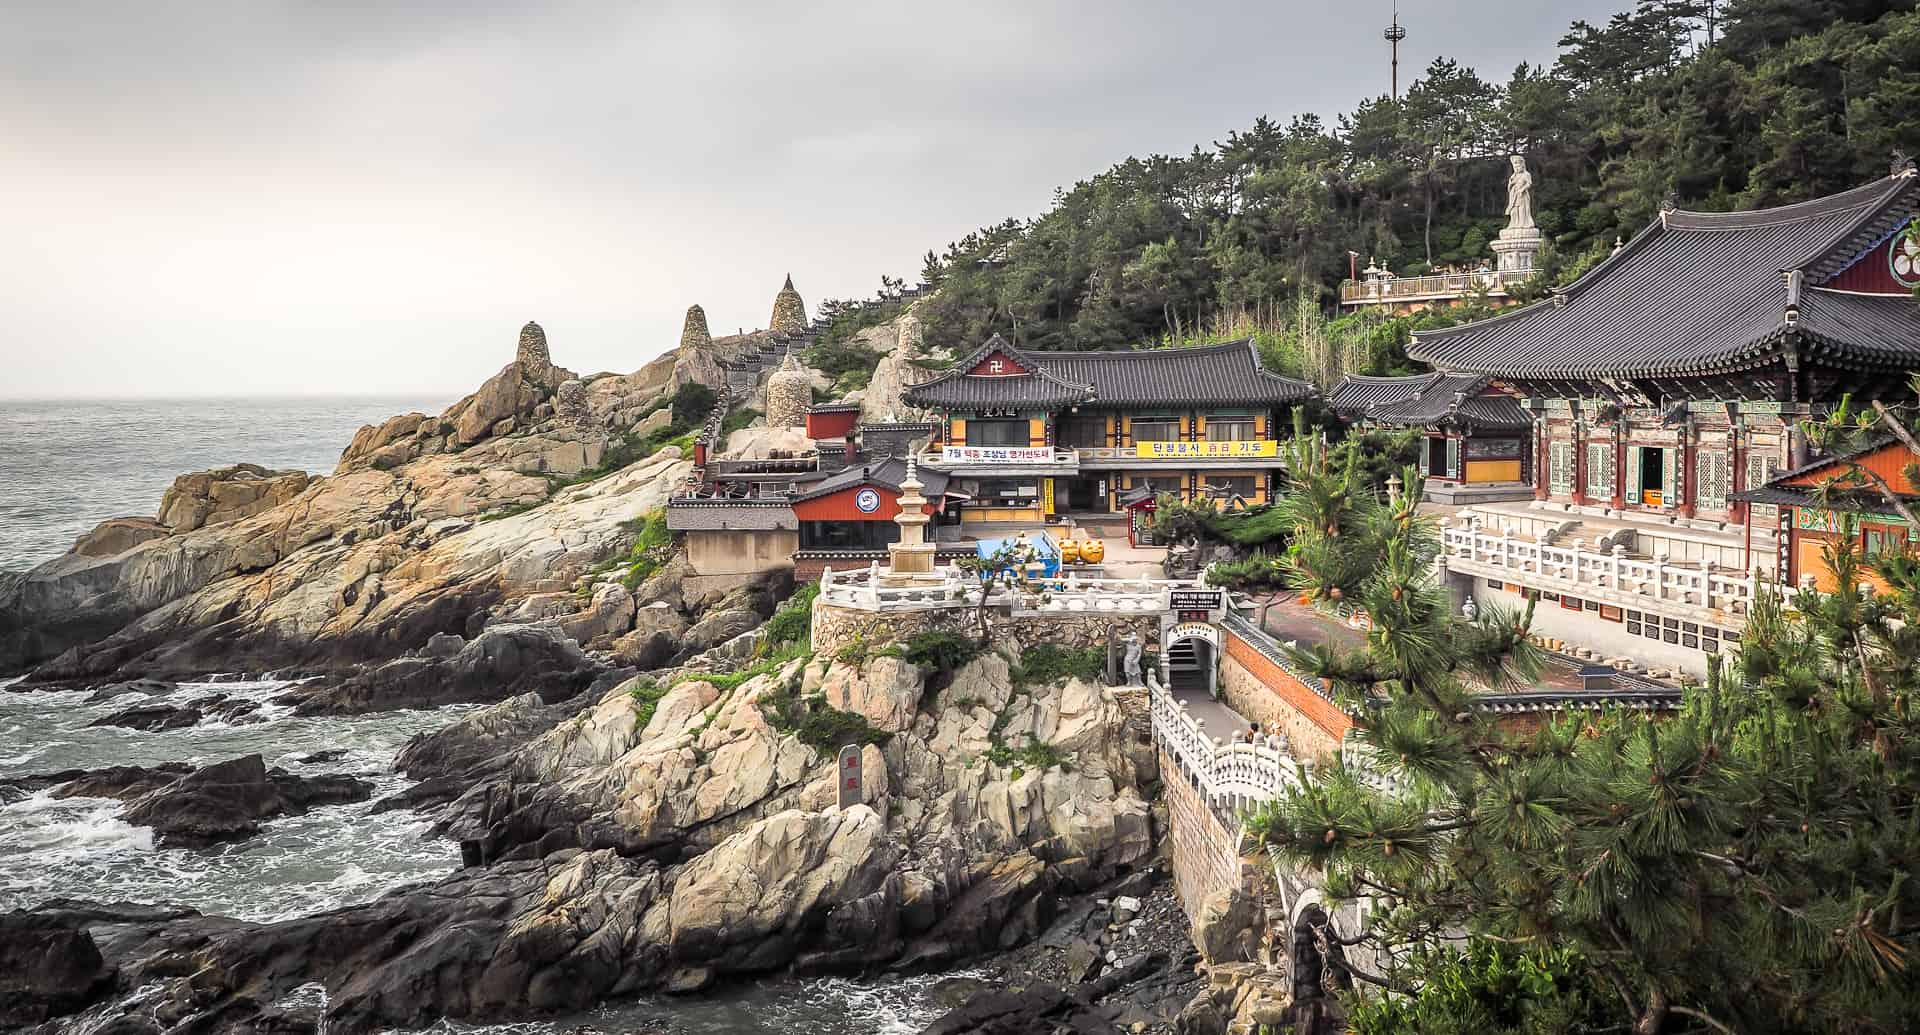 Haedong Yonggungsa: Mixed Feelings about Busan's Temple by the Sea |  Spiritual Travels